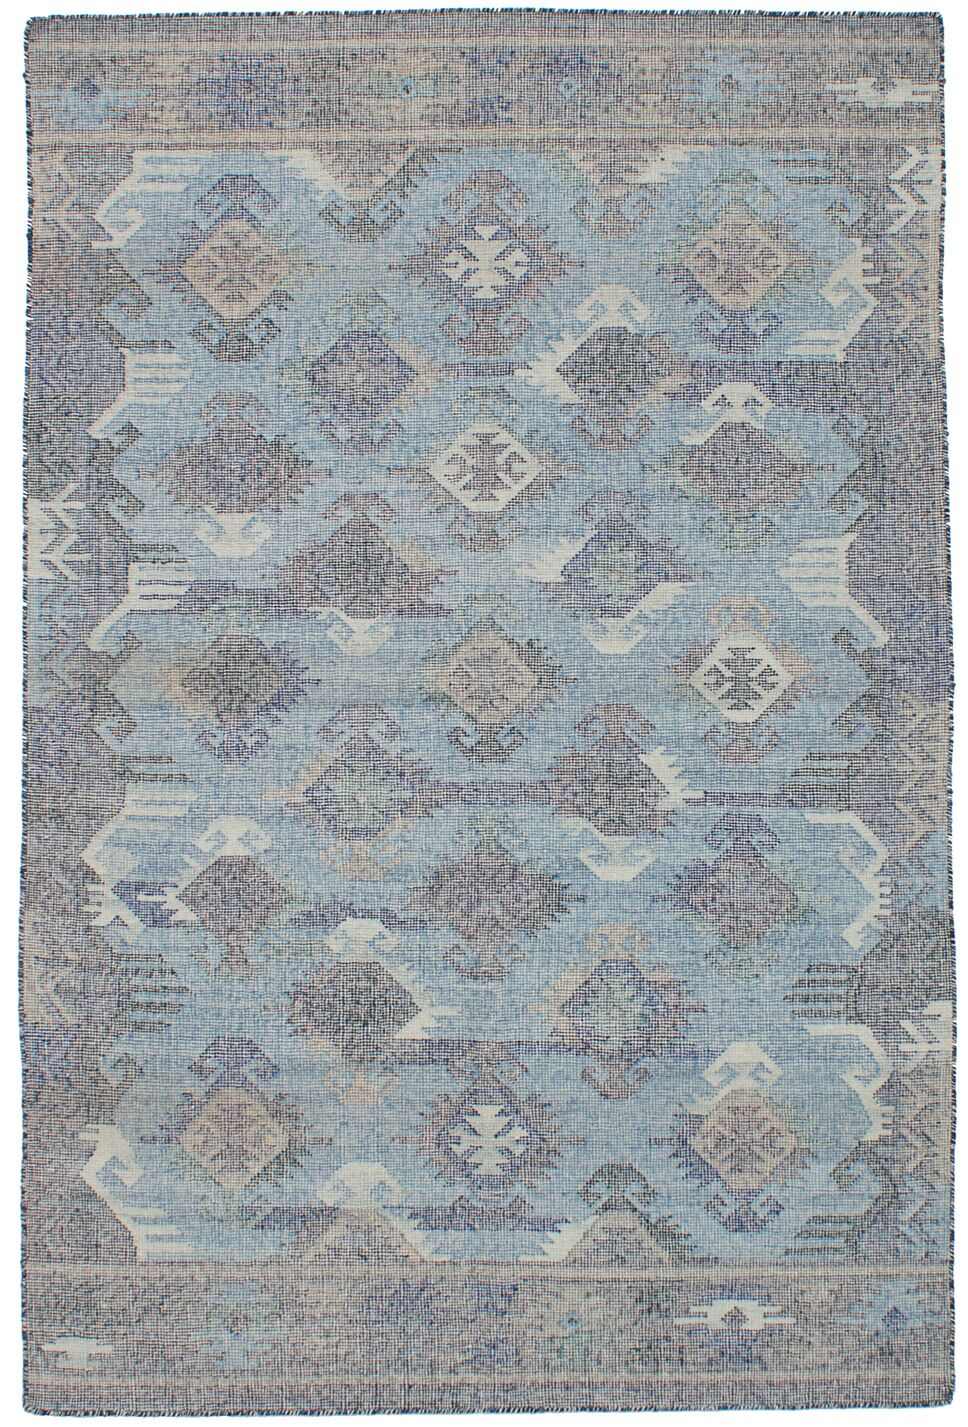 Bevers Hand Flat Woven Wool Light Blue Area Rug Rug Size: Rectangle 4'11